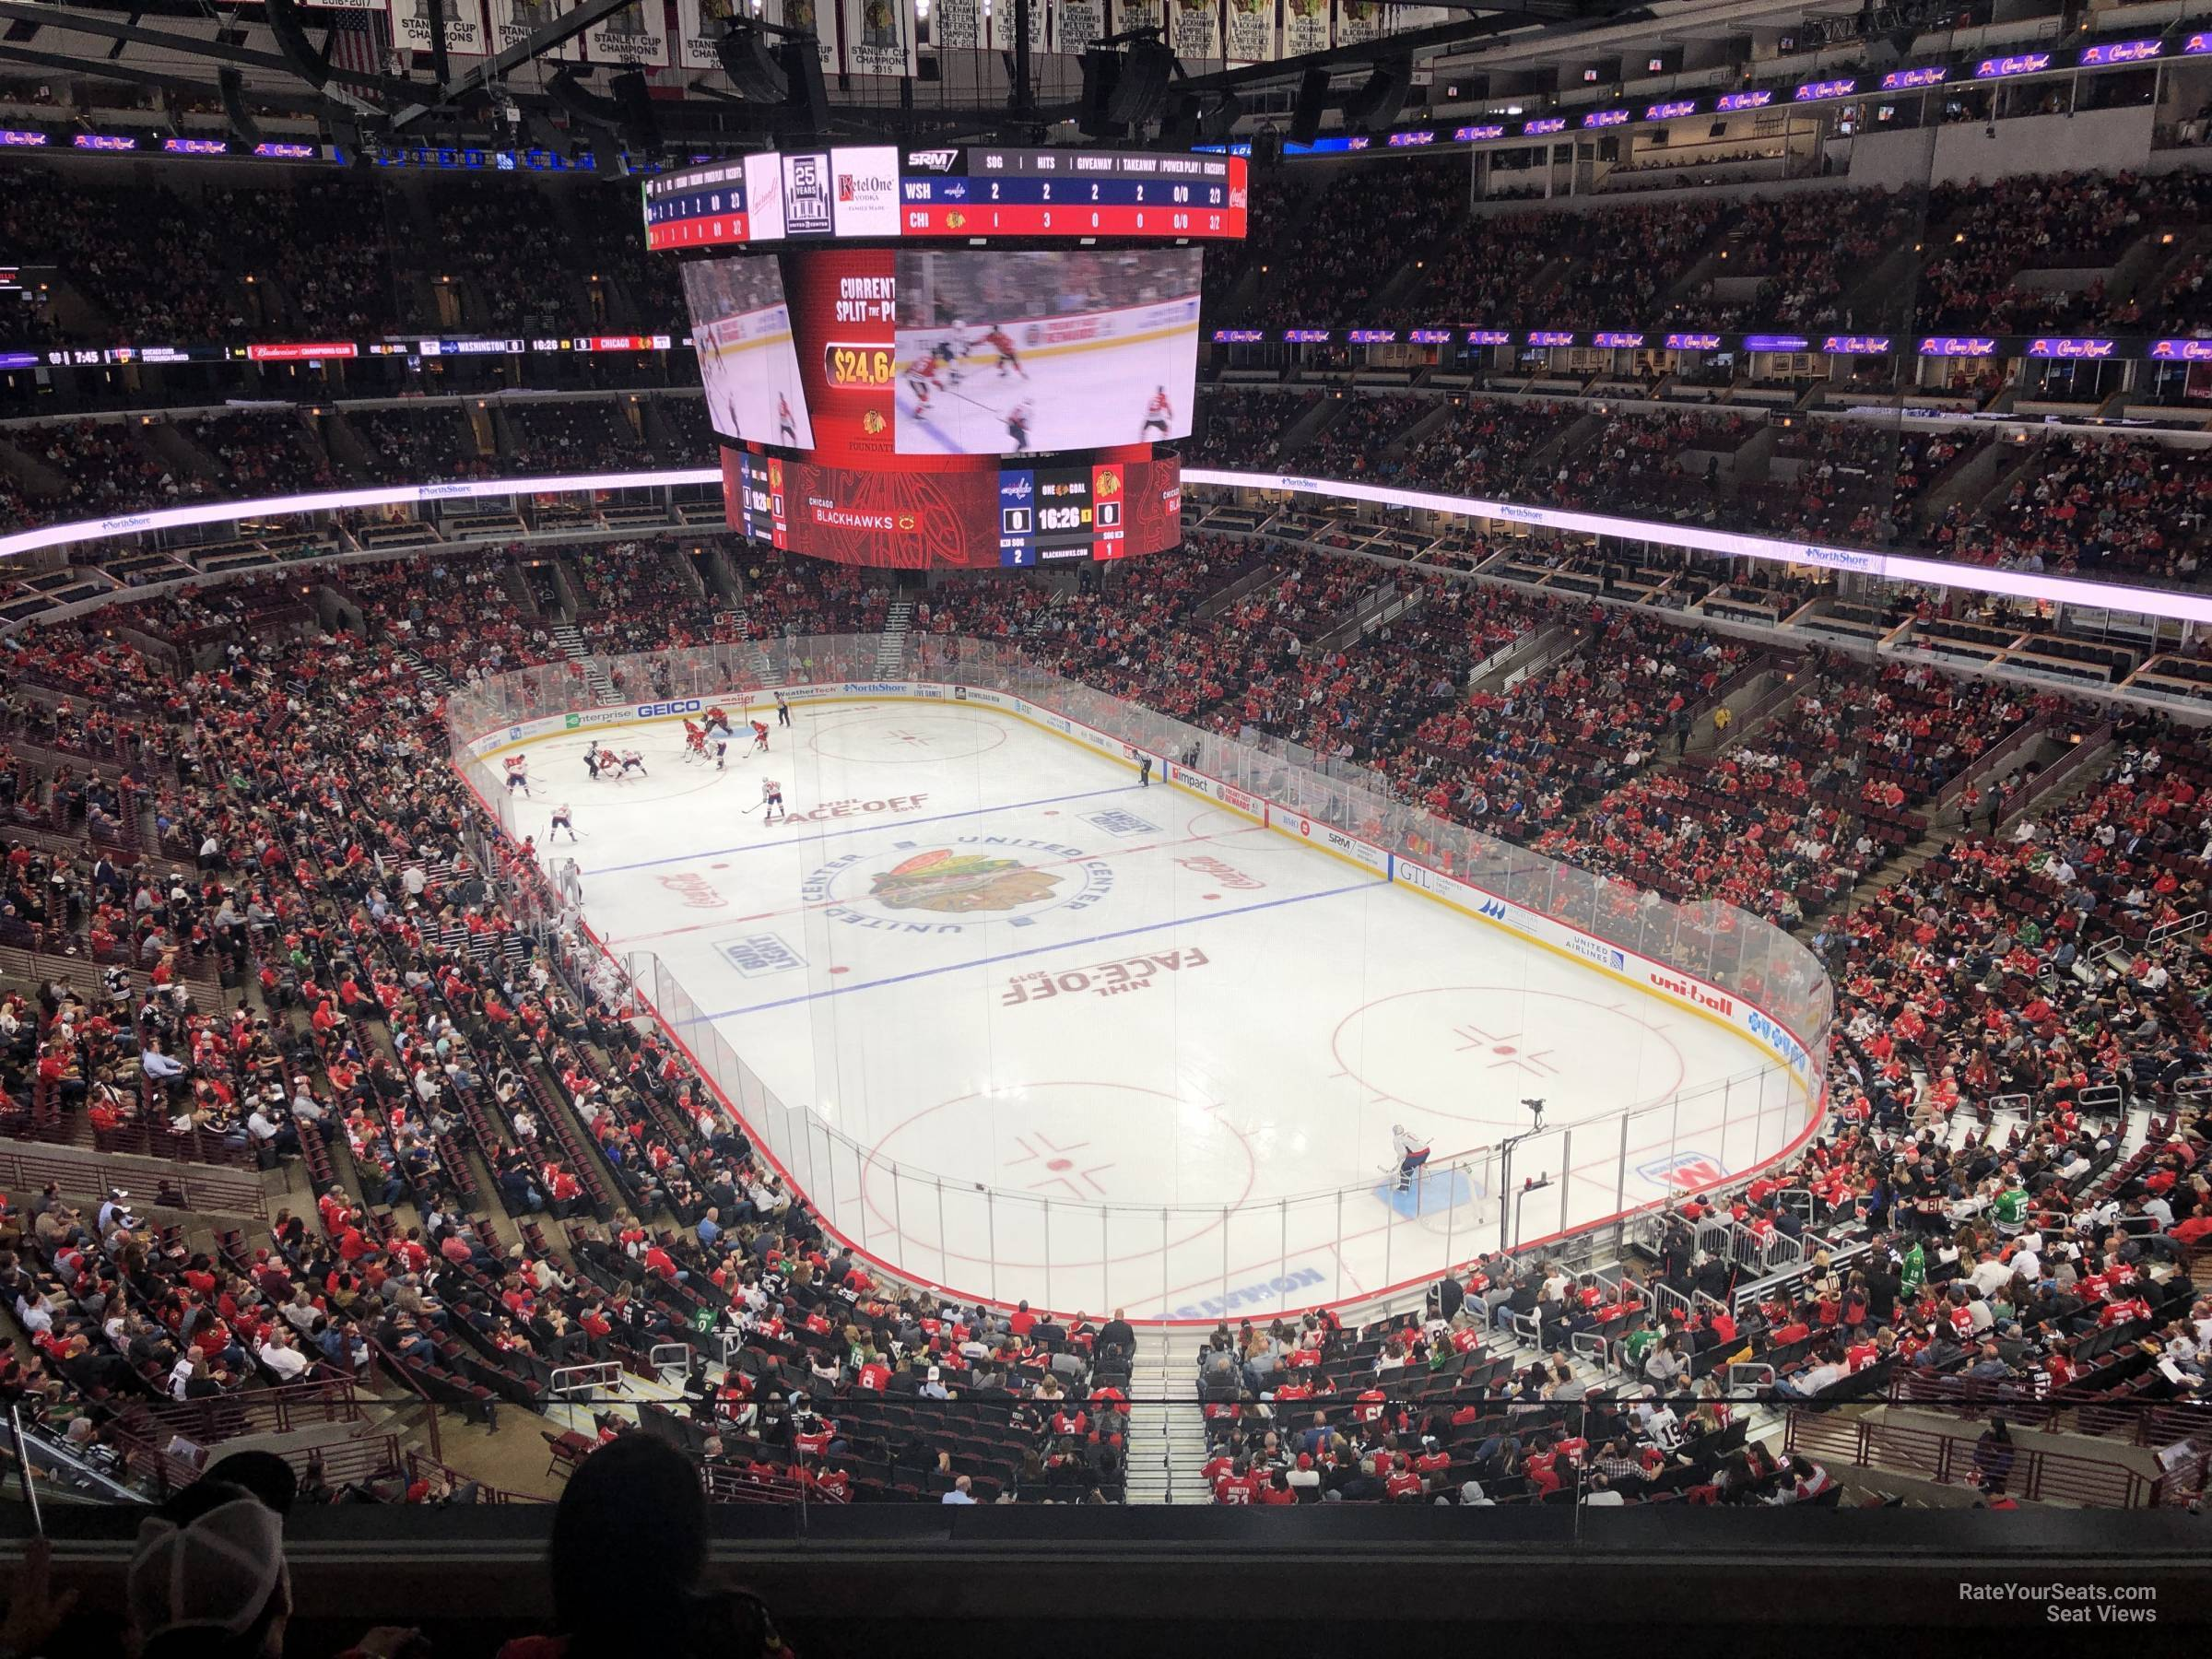 Section 328 seat view